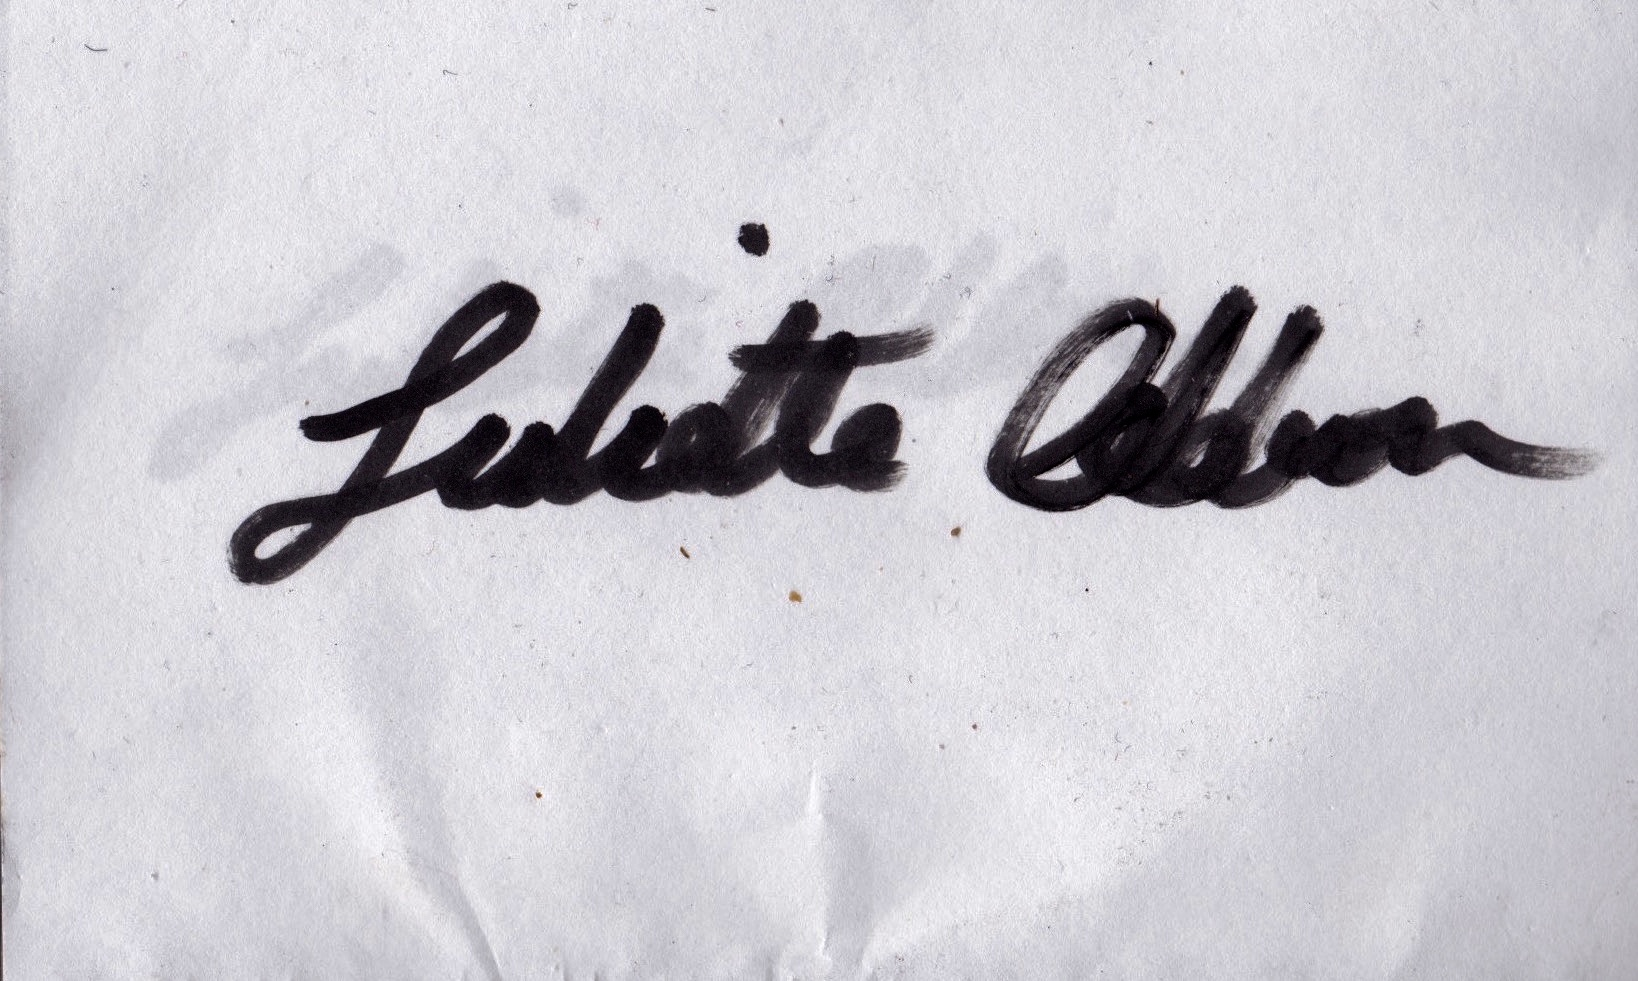 juliette addison's Signature